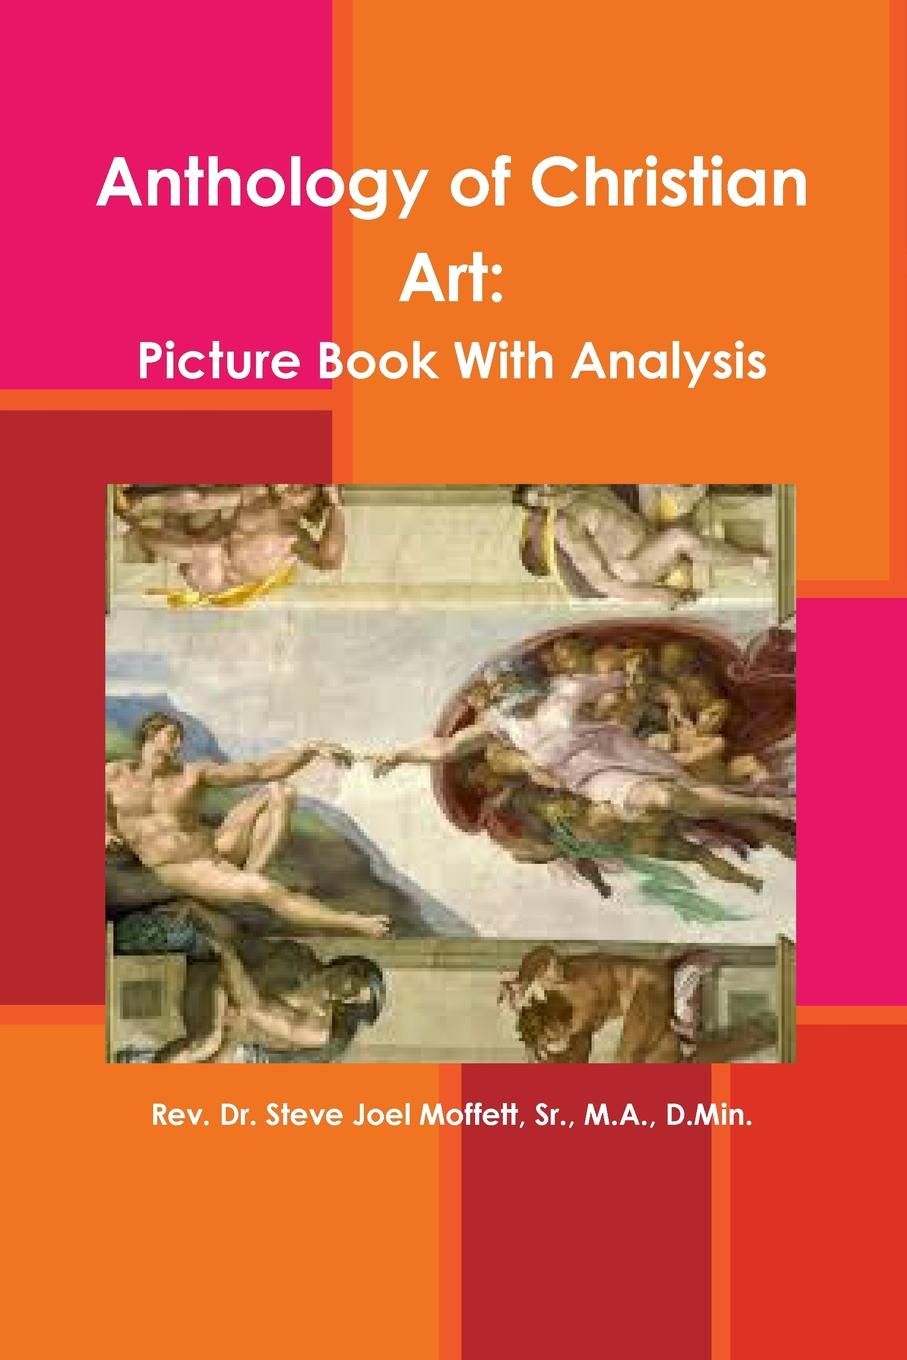 Sr. M.A. D.Min. Rev. Dr. Ste Moffett Anthology of Christian Art. Picture Book with Analysis making sense of christian art